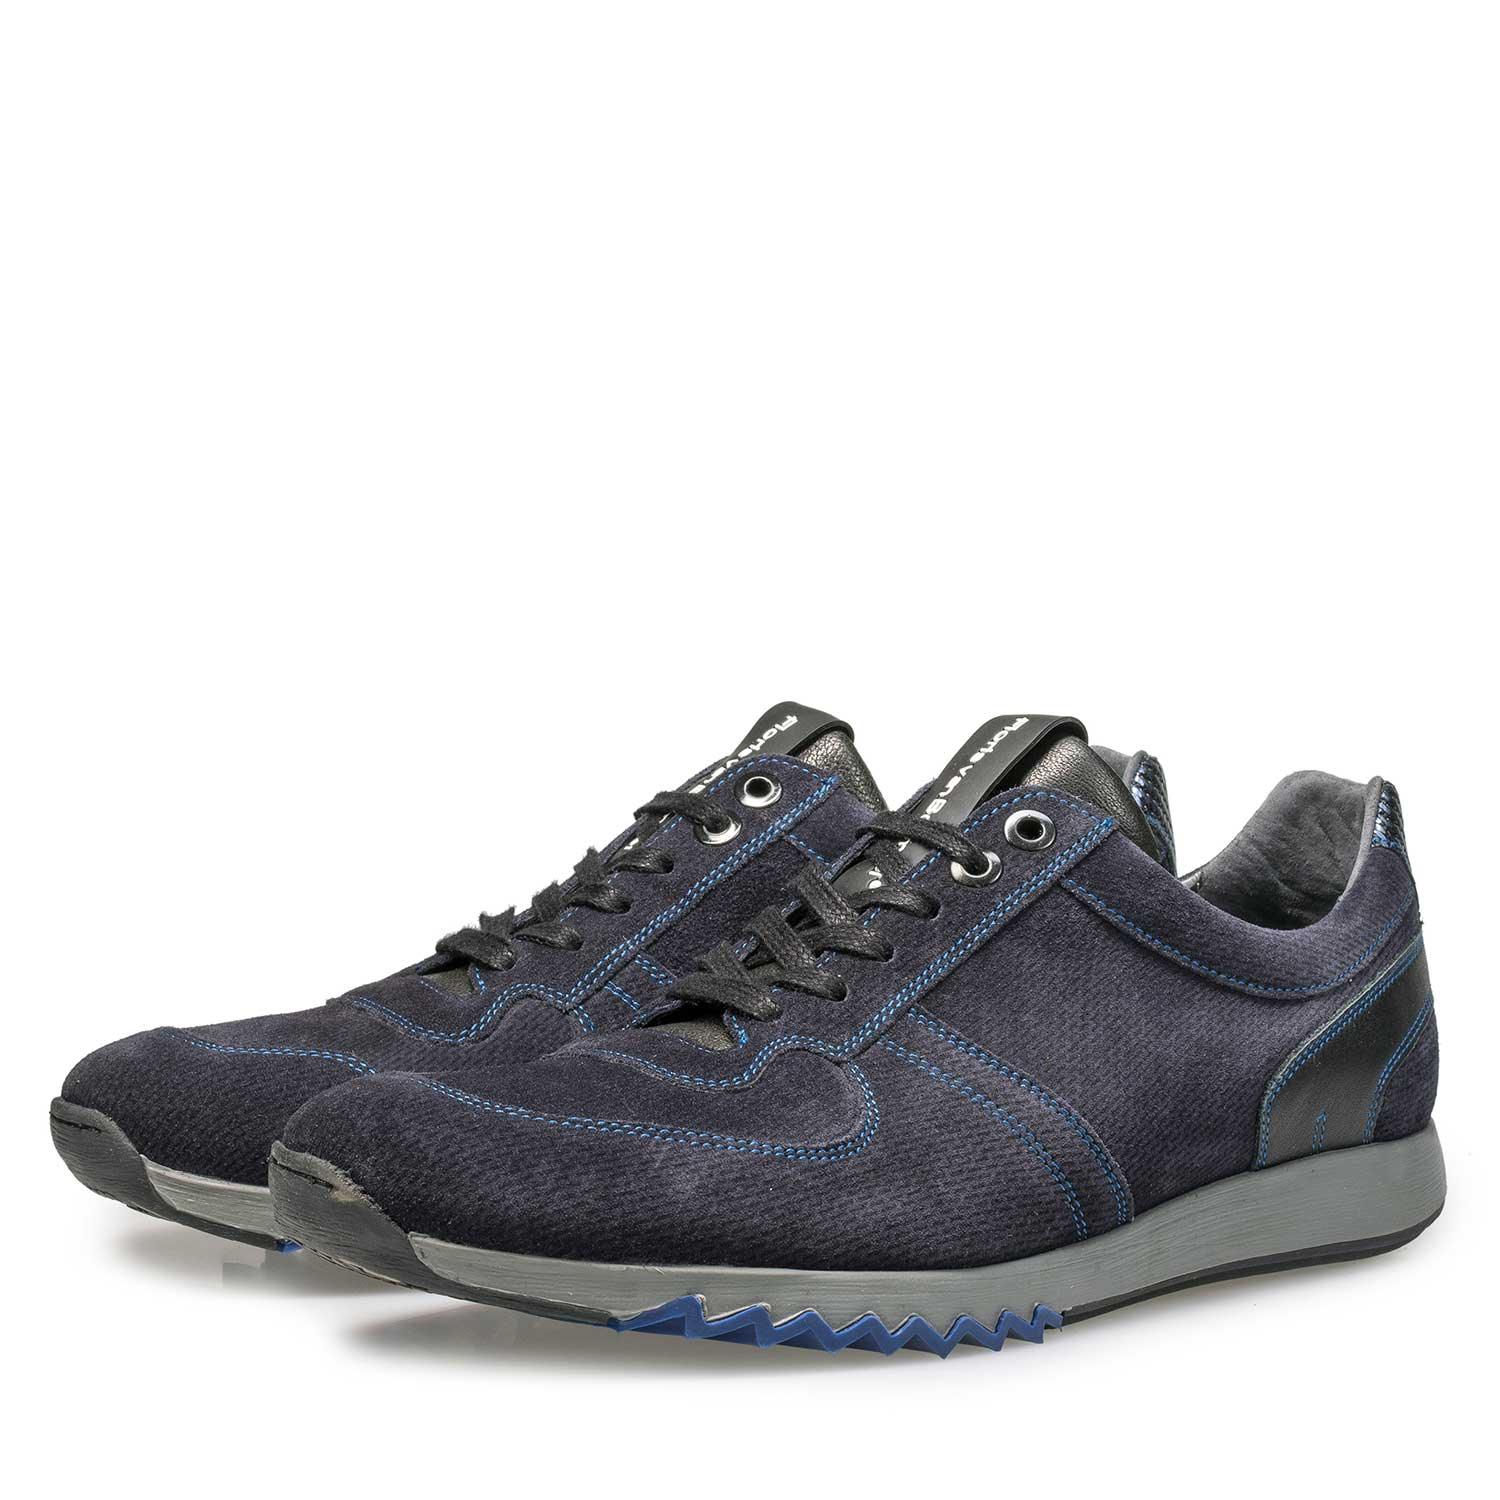 16171/09 - Blue calf's suede leather sneaker with pattern